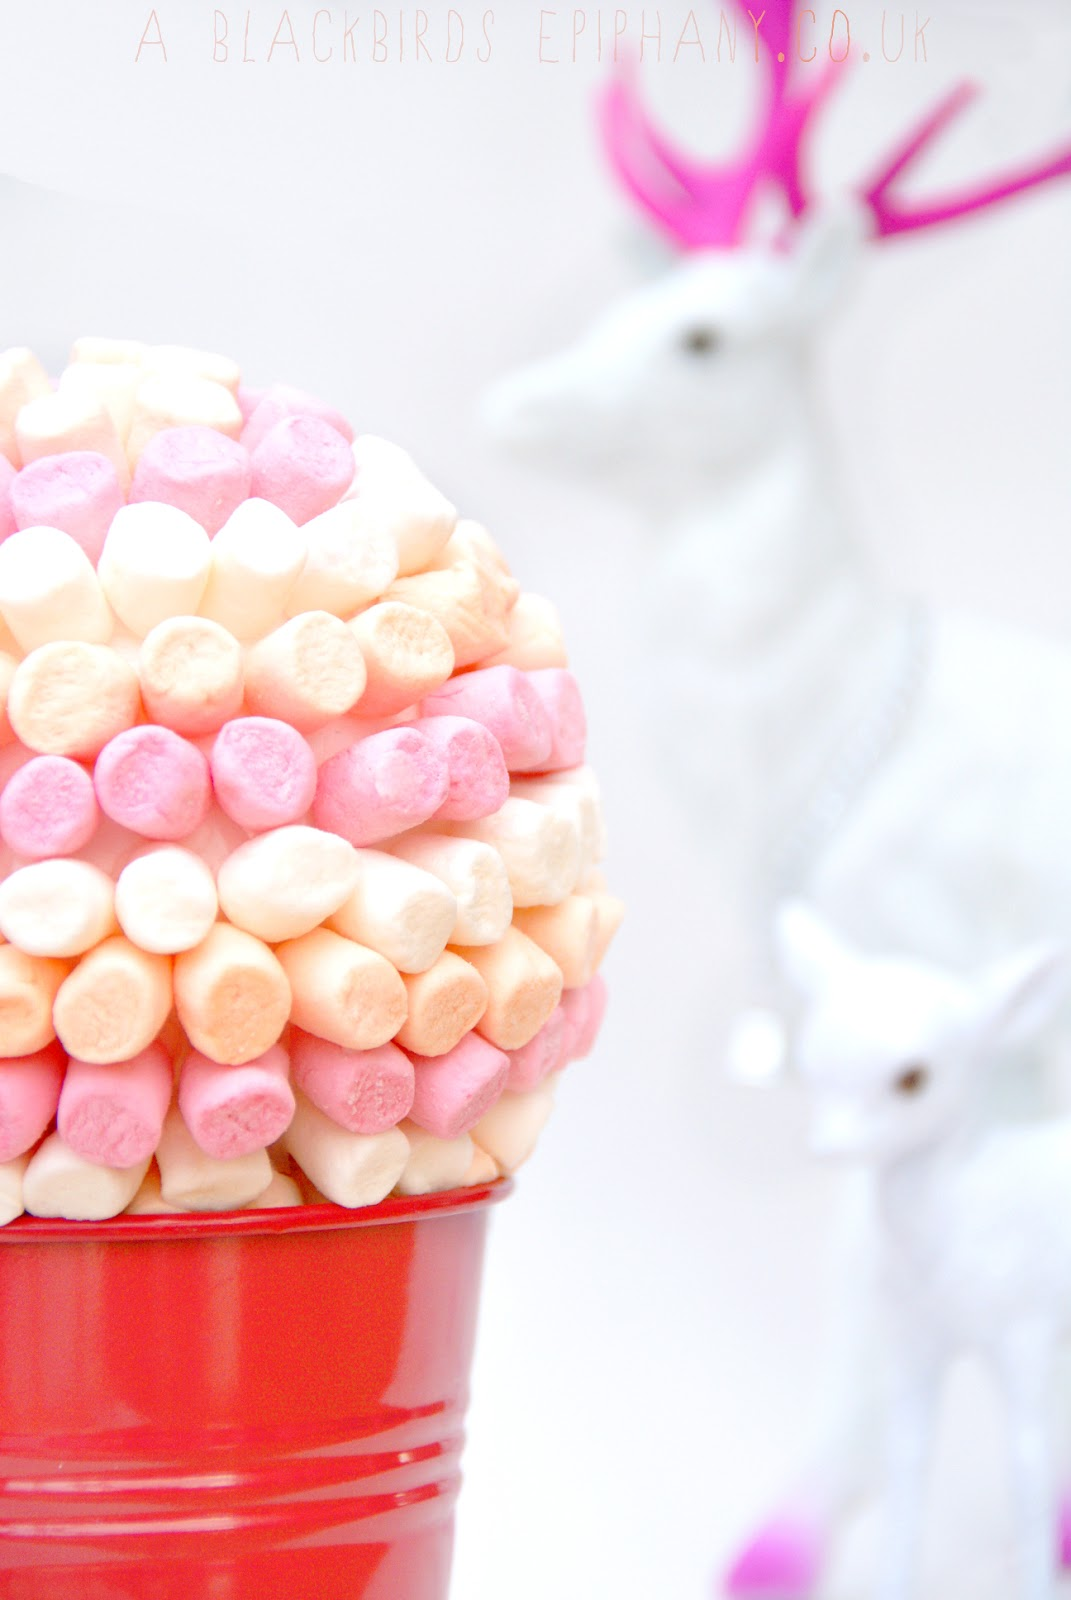 How To Make A Mini Marshmallow Topiary Blackbirds Epiphany Uk I Made Mine With Marshmallows But Found That Smarties Didnt Work Too Well For Me Because Was Impatient And Mix The Icing Thick Enough